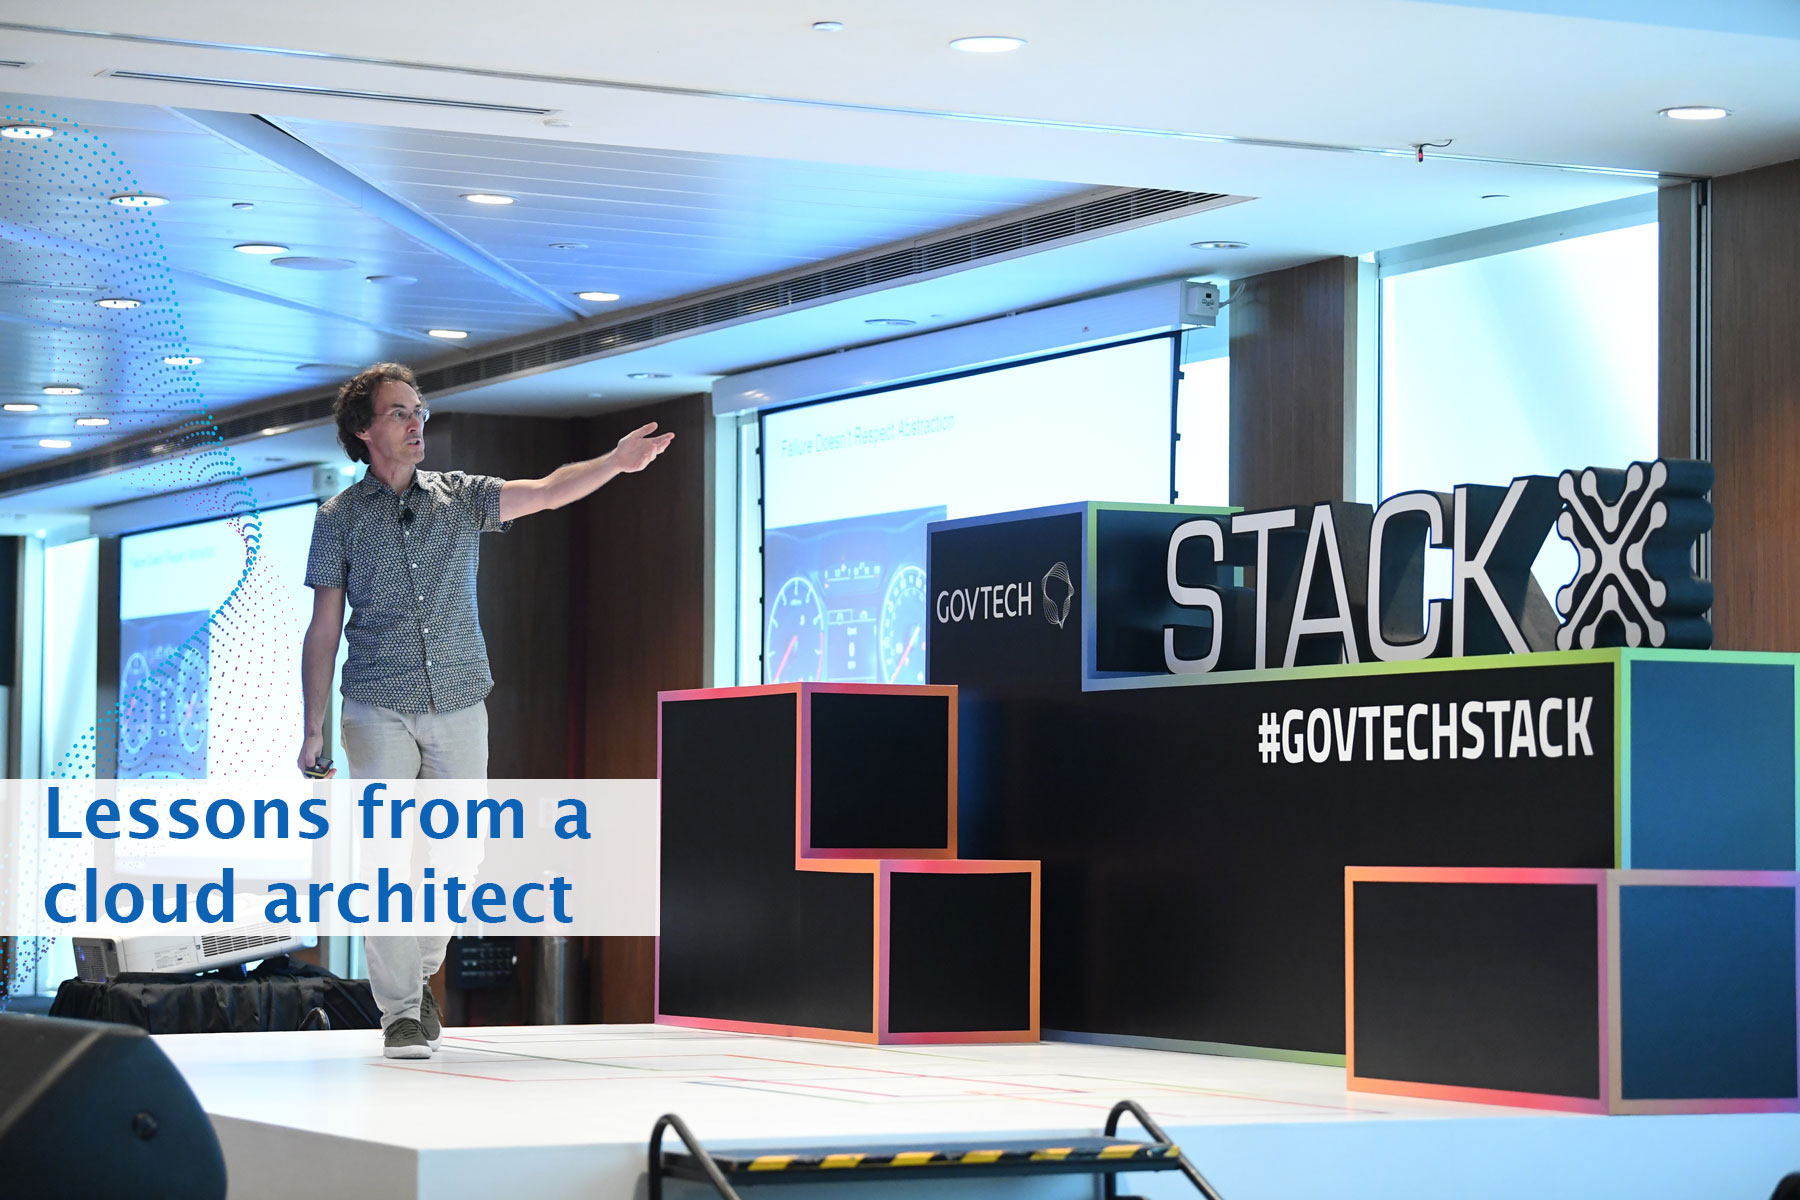 Gregor Hohpe, sharing about Cloud Architecture at Stack-X: Cloud organised by GovTech